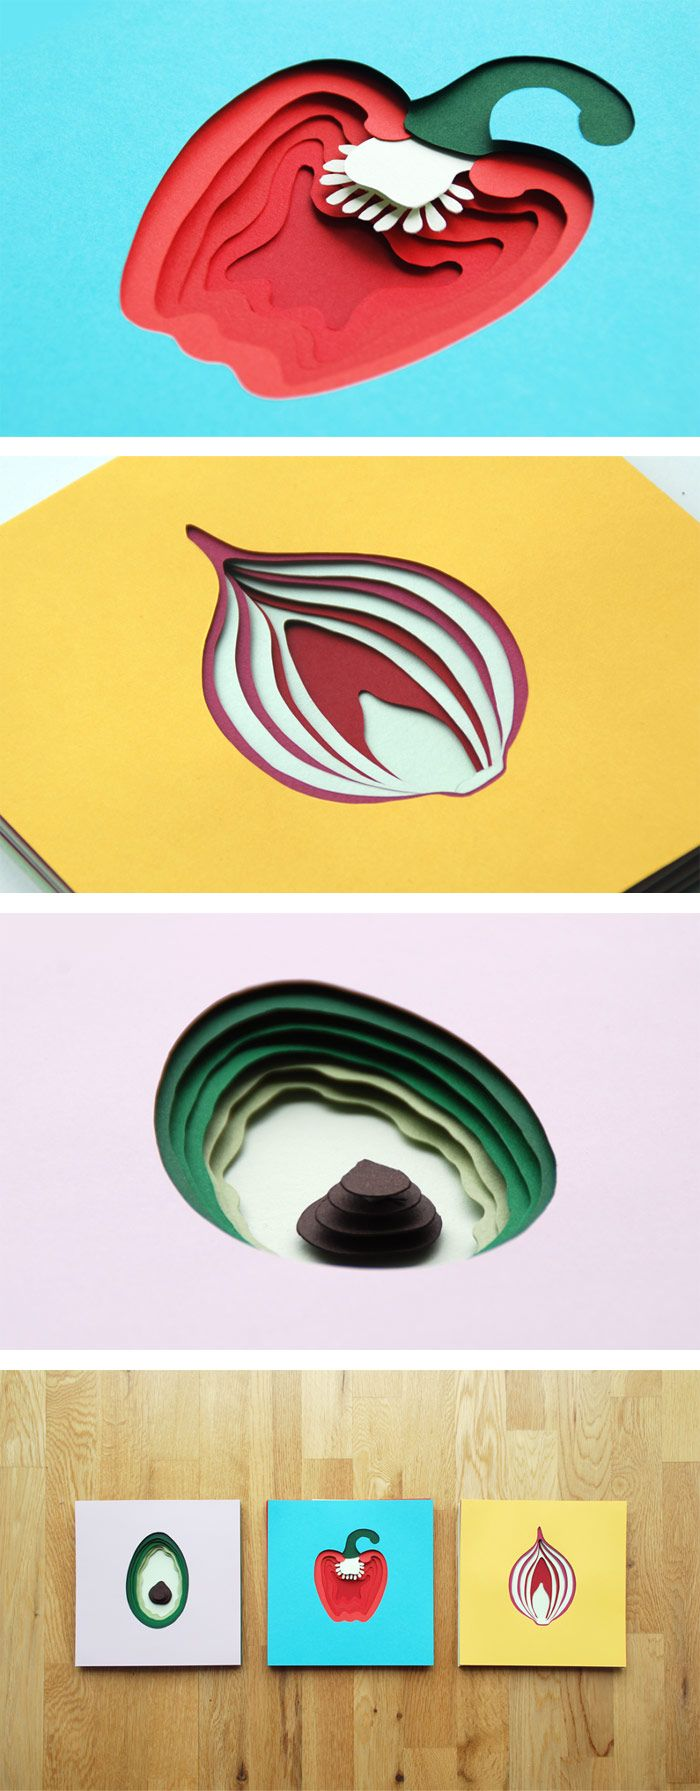 So this is technically paper design, but it's just so cool! Fruits and veggies…